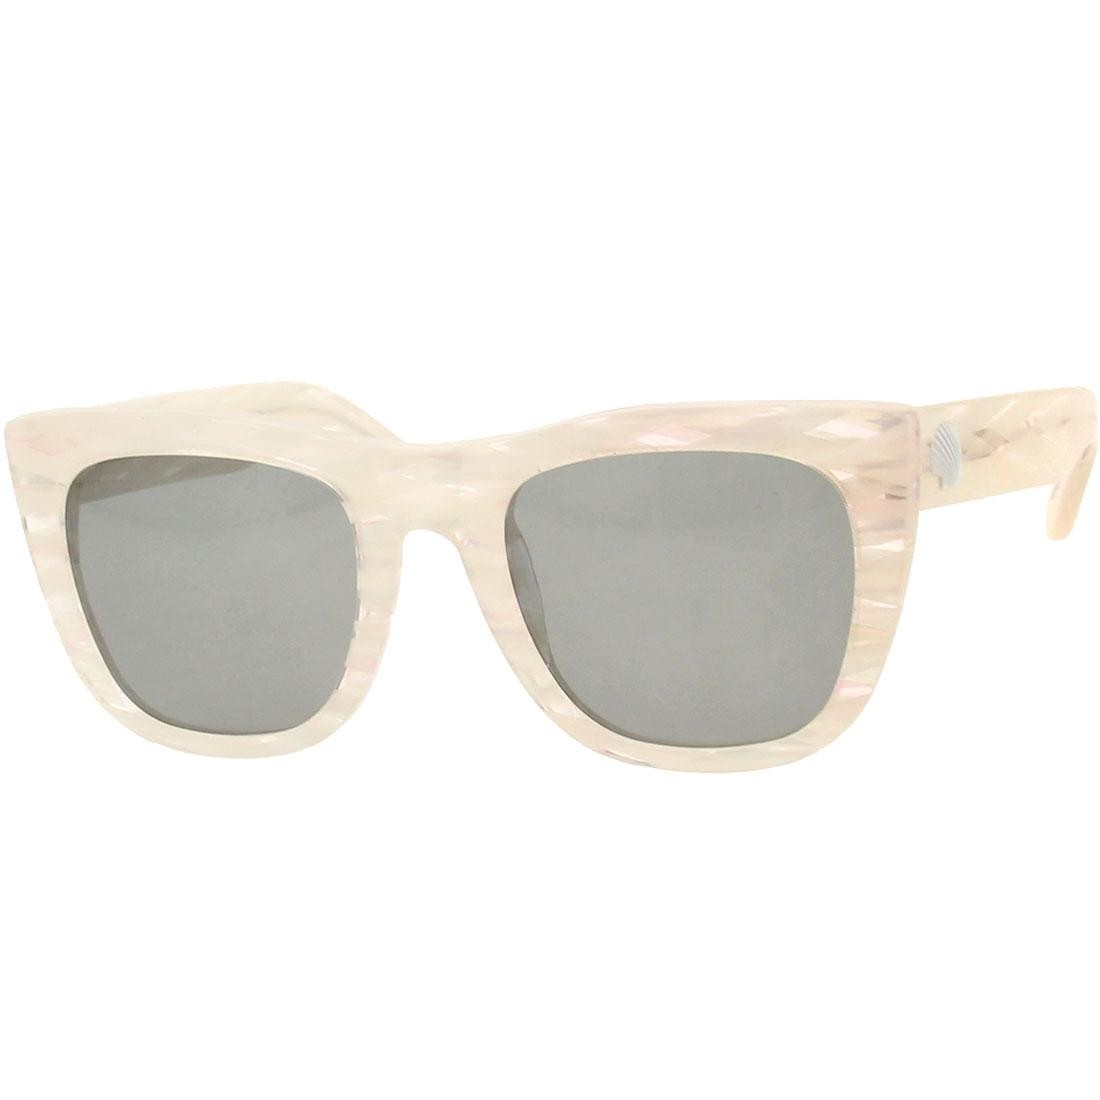 Super Sunglasses Gals Marina (white / clear)